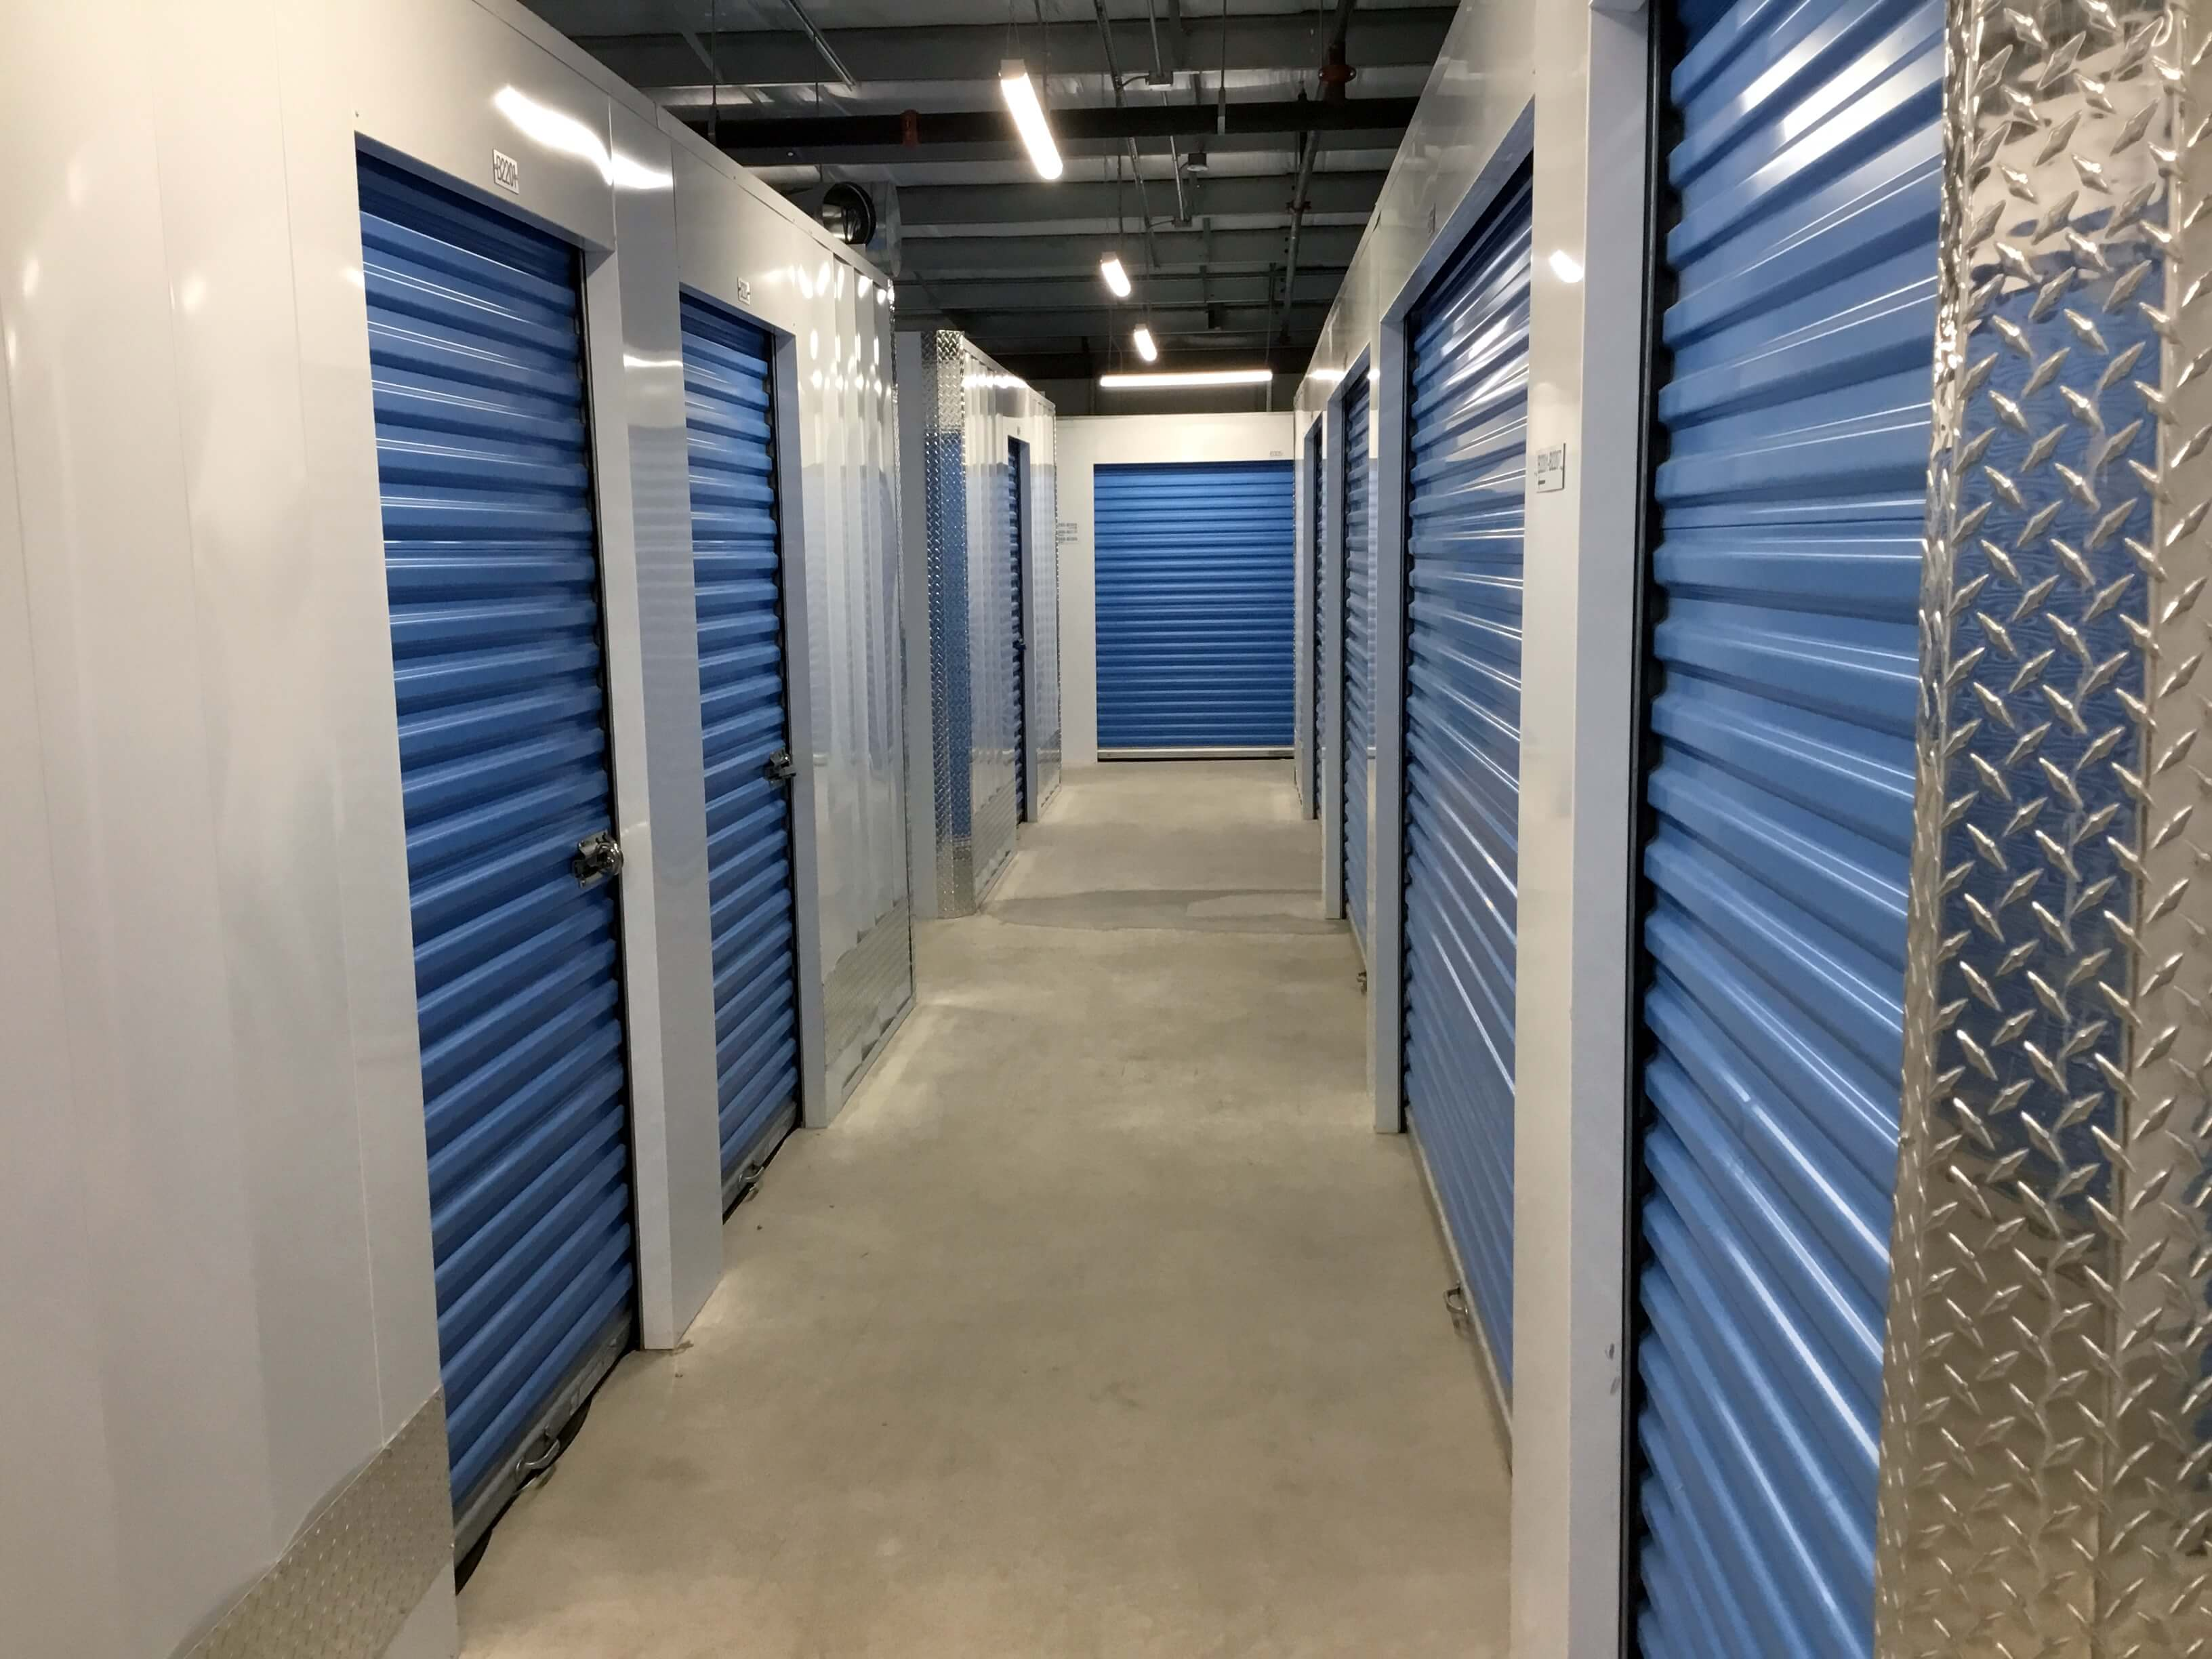 Inside row of storage units at Smart Stop self storage facility located at 515 Centennial Road North, Scarborough Ontario Canada